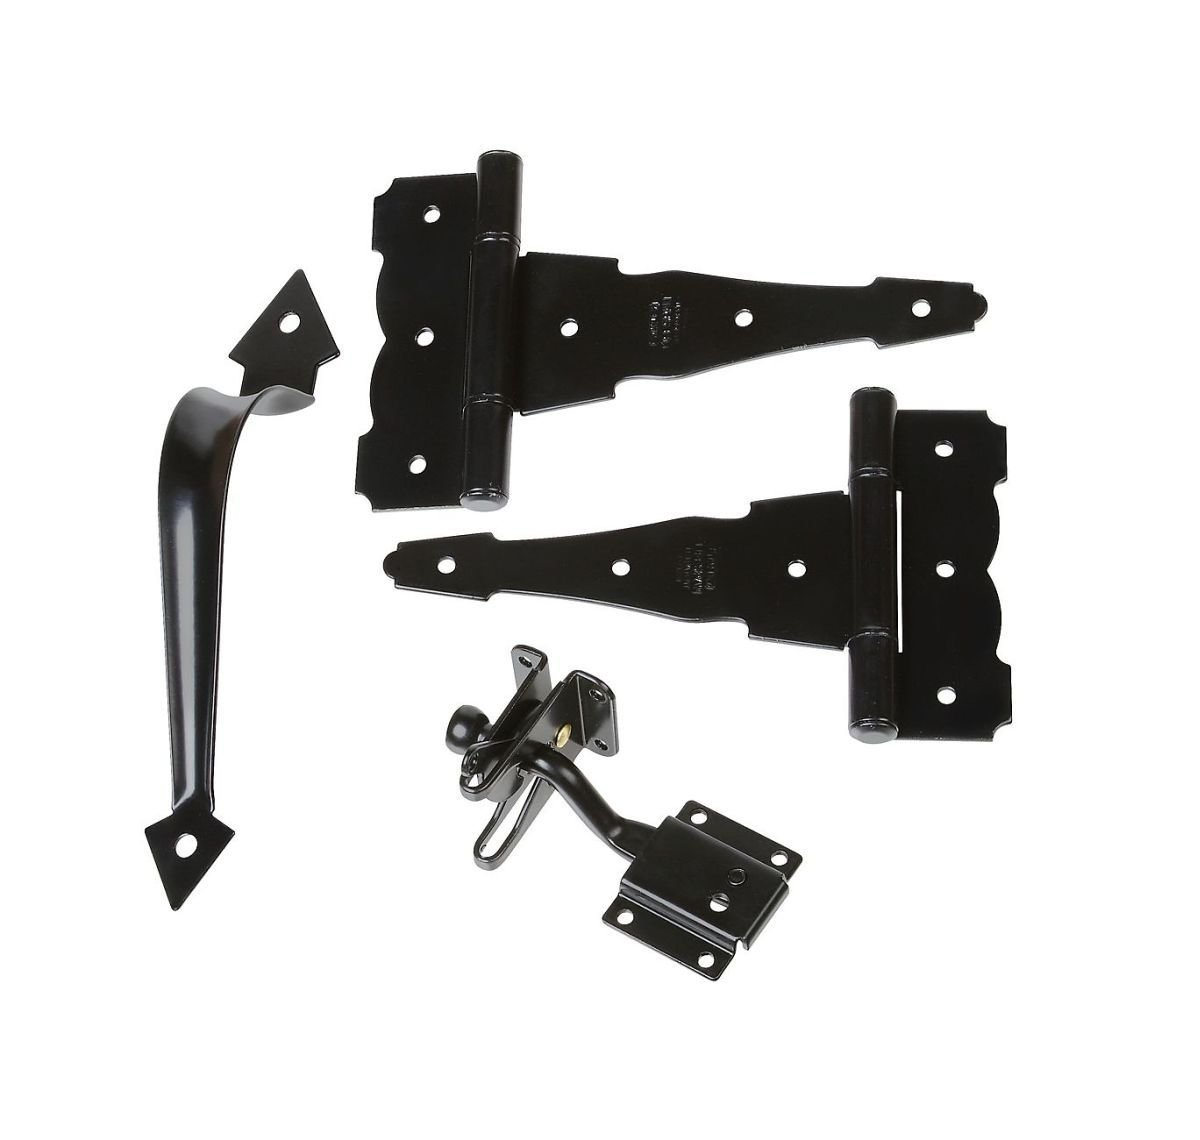 Stanley Hardware S824-334 CD1308 Decorative Gate Kit in Black